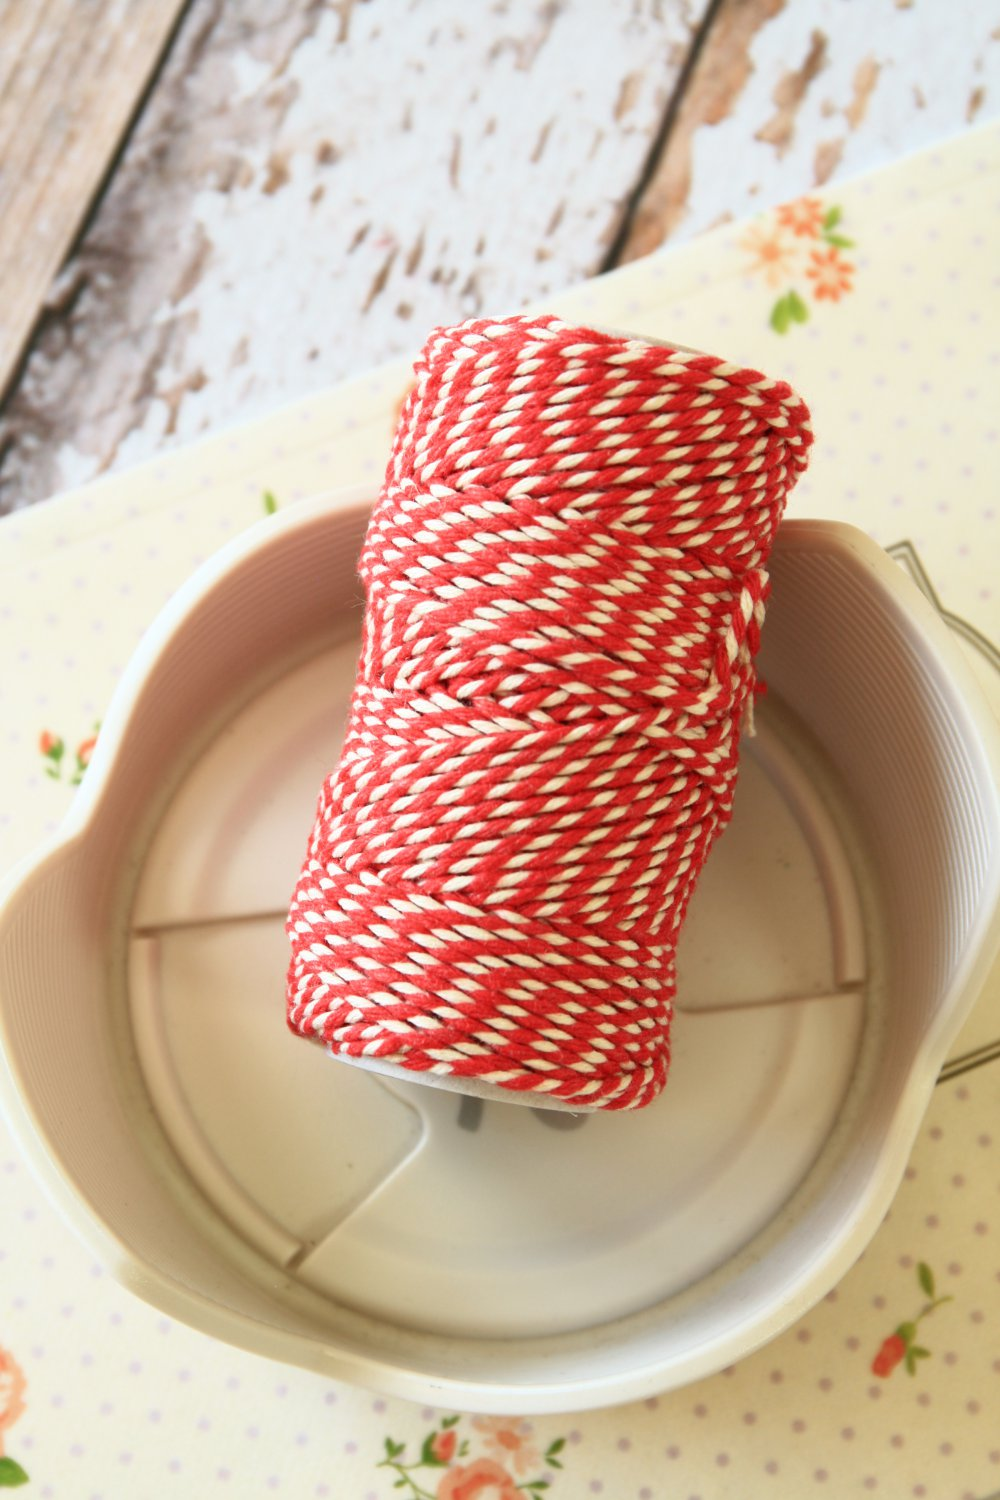 Beefeater Red 20m Everlasto Bakers Twine string spool